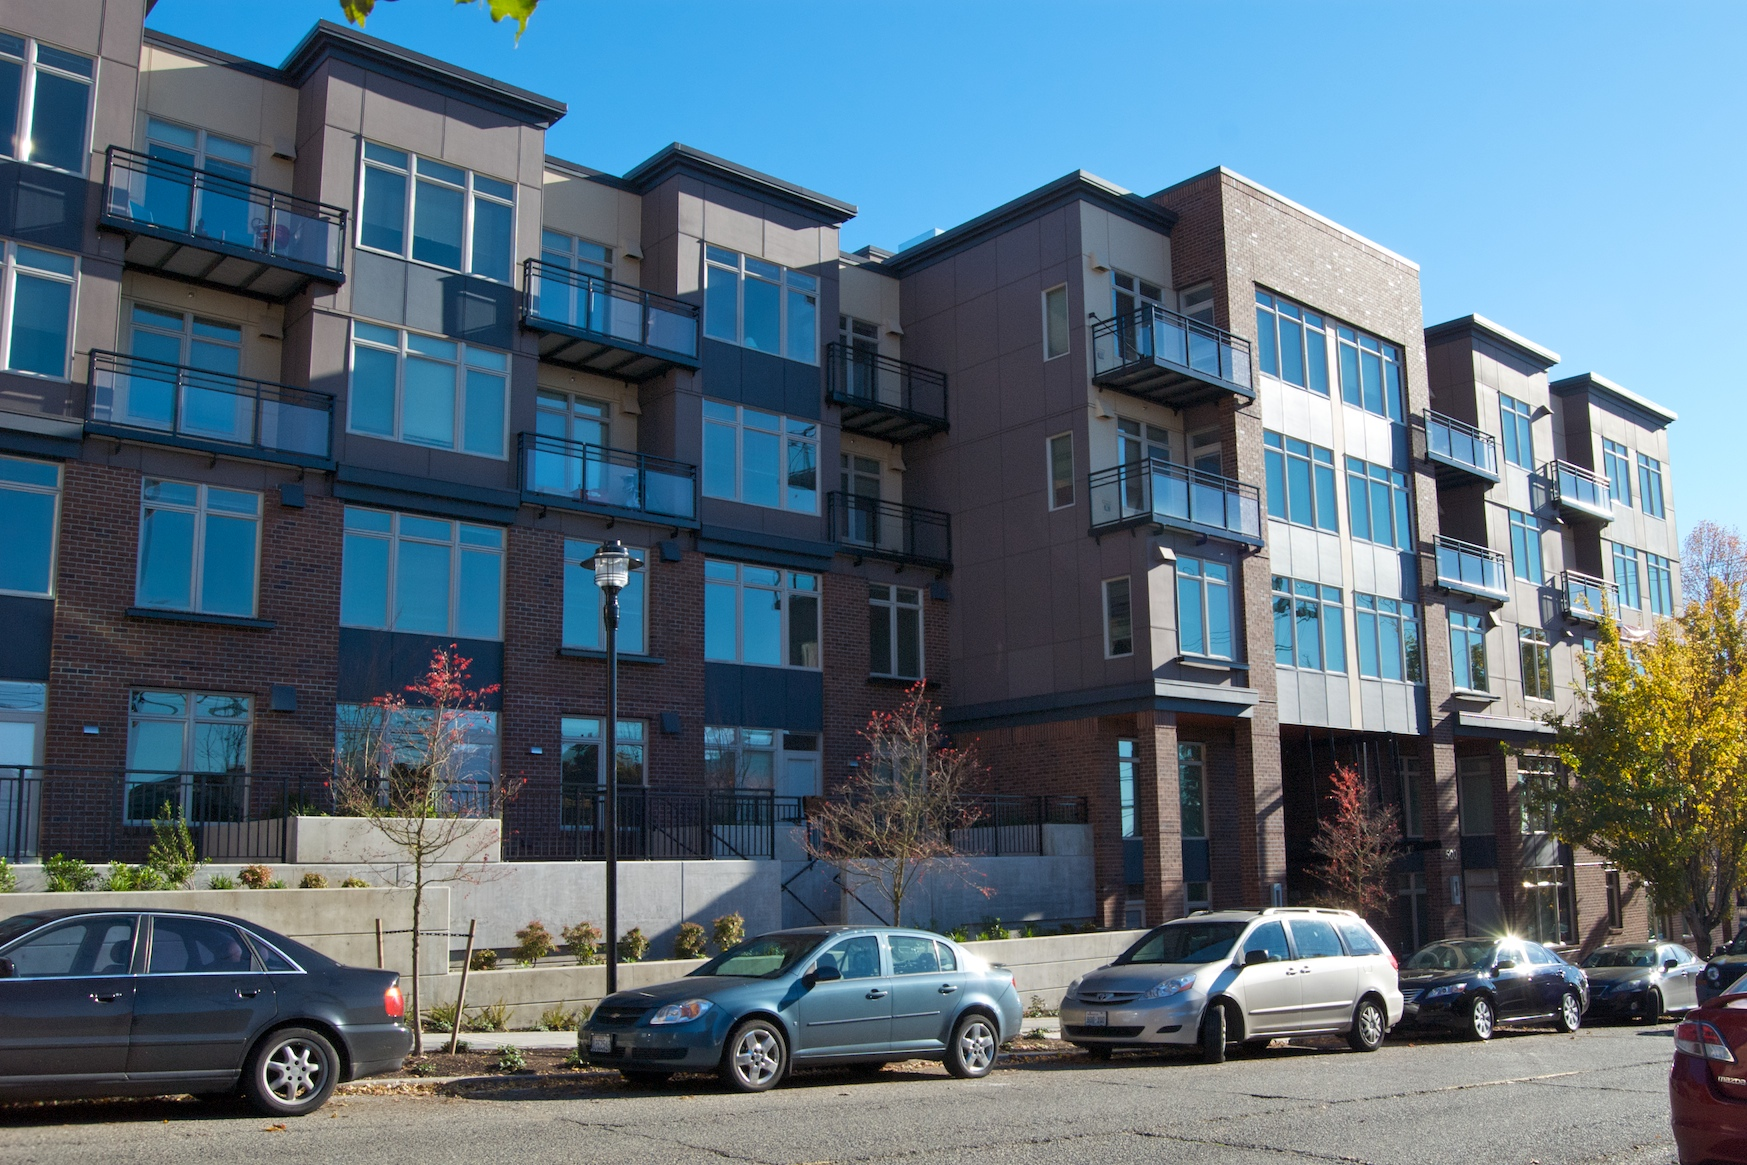 Jax Apartments  76 Units — Queen Anne  Completed 2014